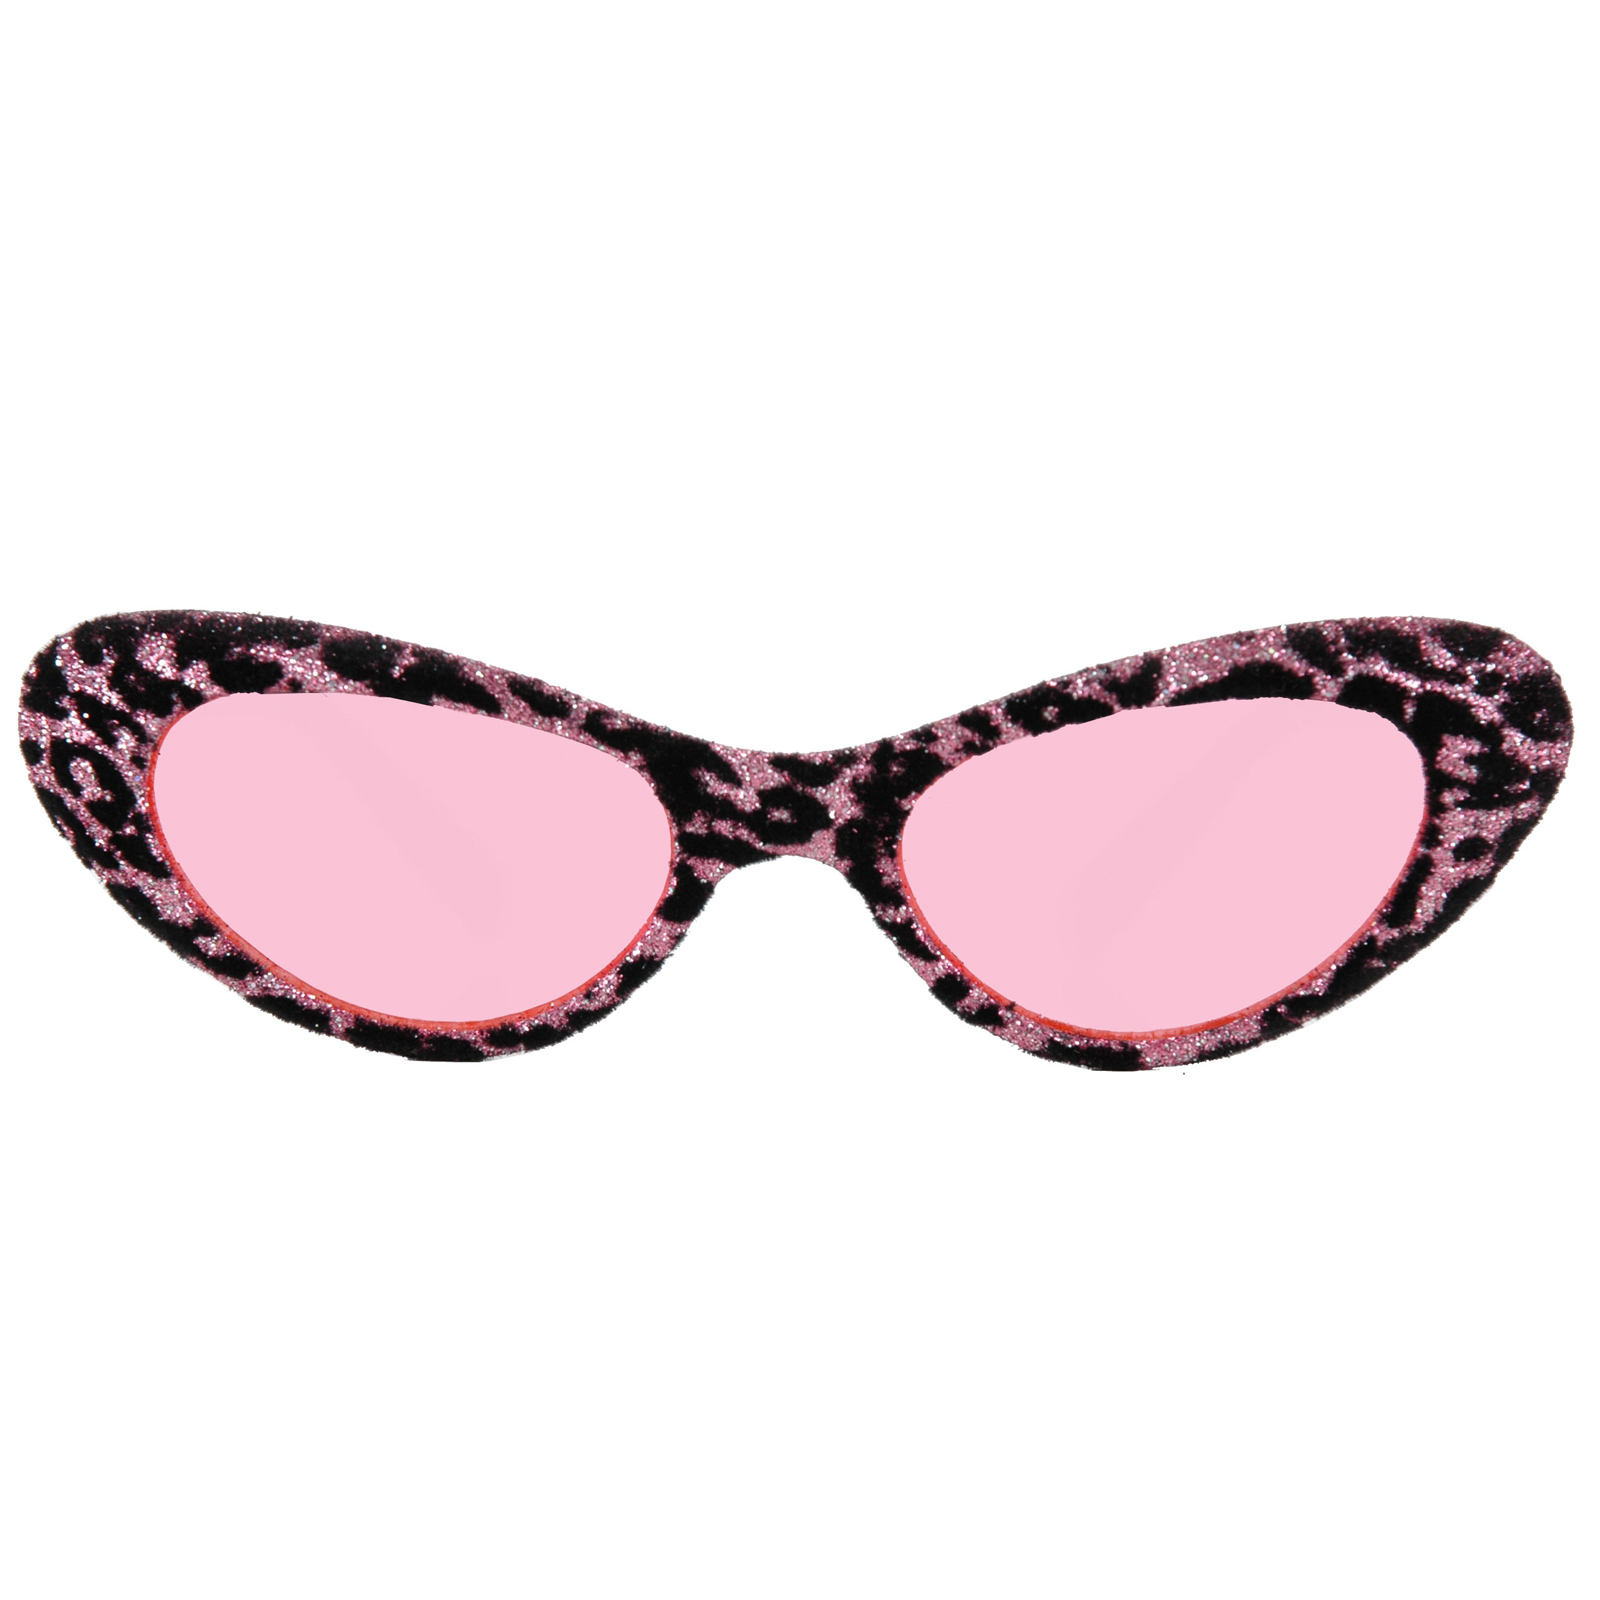 Spectacles clipart pink glass Gclipart clipart eyeglasses art Pink